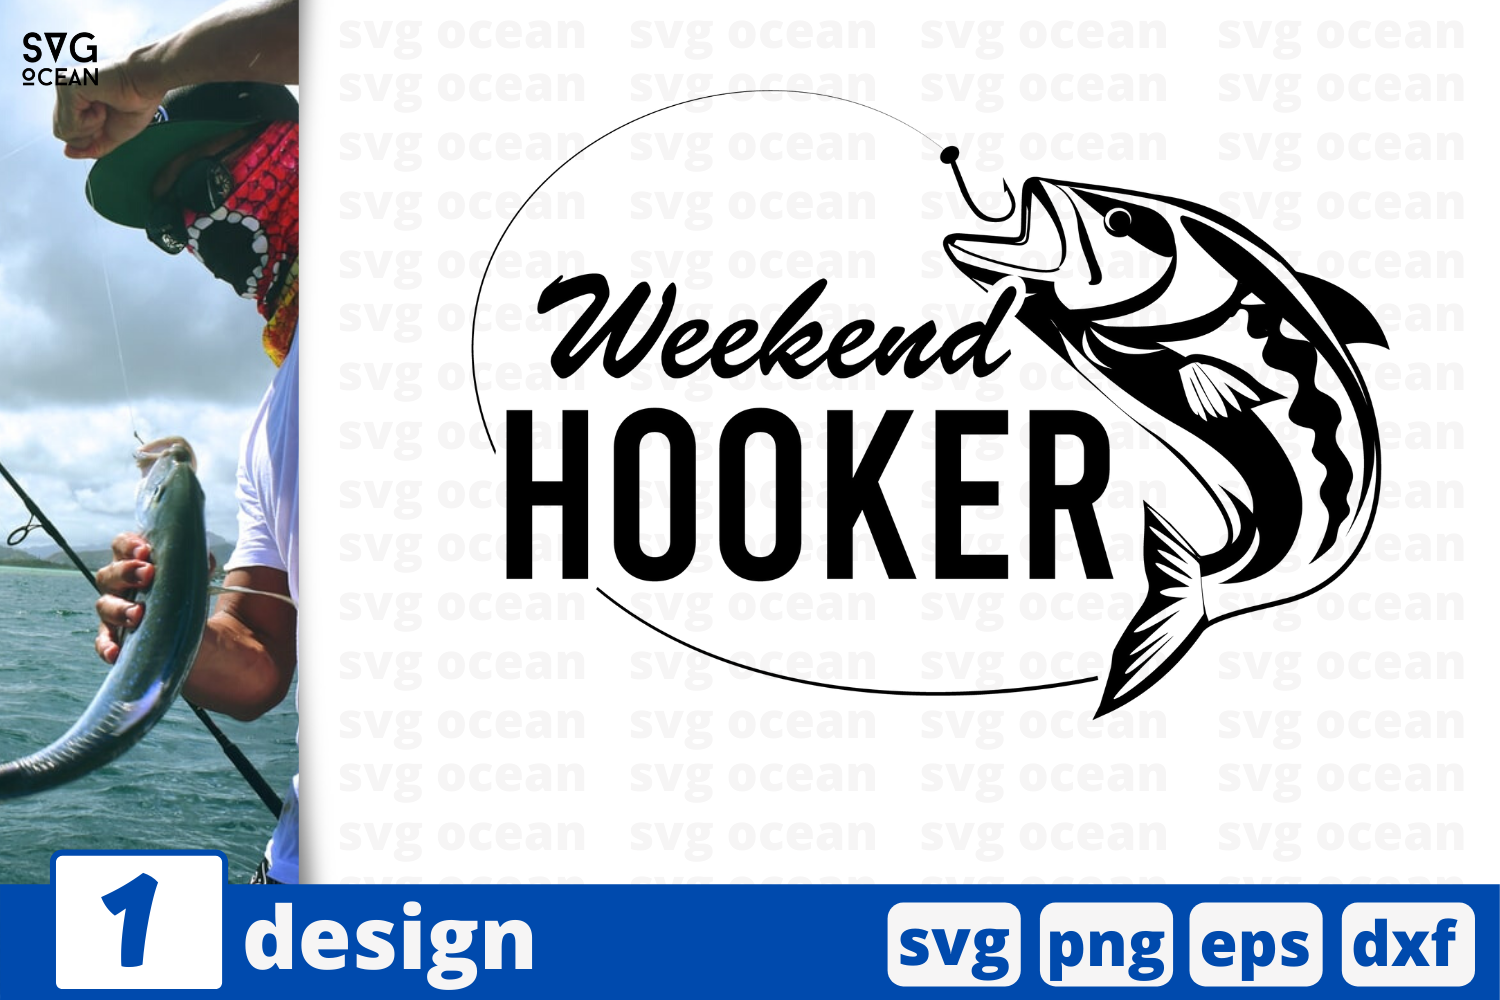 Download Free Weekend Hooker Graphic By Svgocean Creative Fabrica for Cricut Explore, Silhouette and other cutting machines.